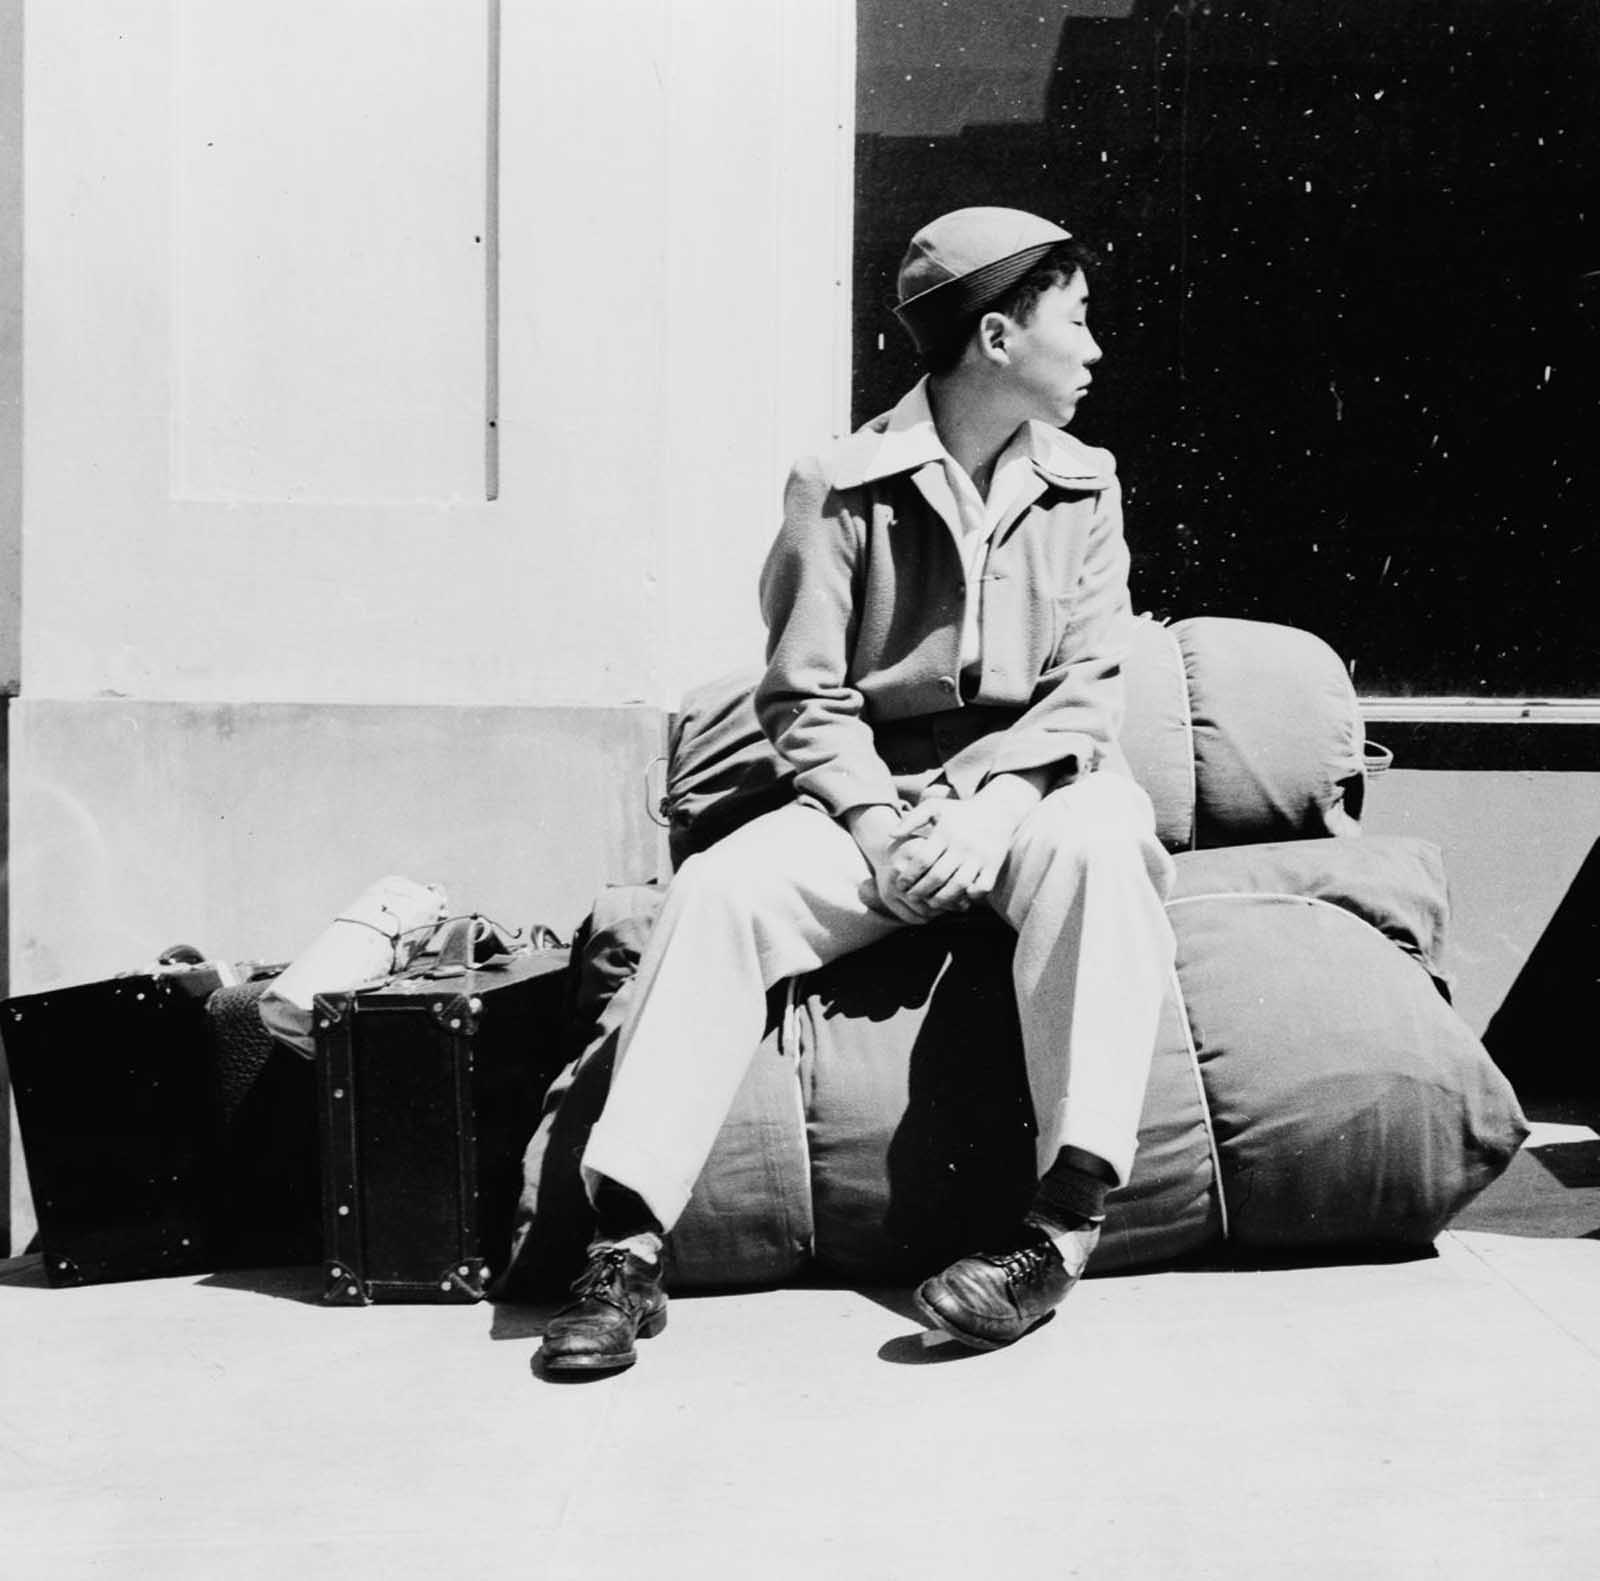 A boy sits on his belongings as he awaits relocation from San Francisco.